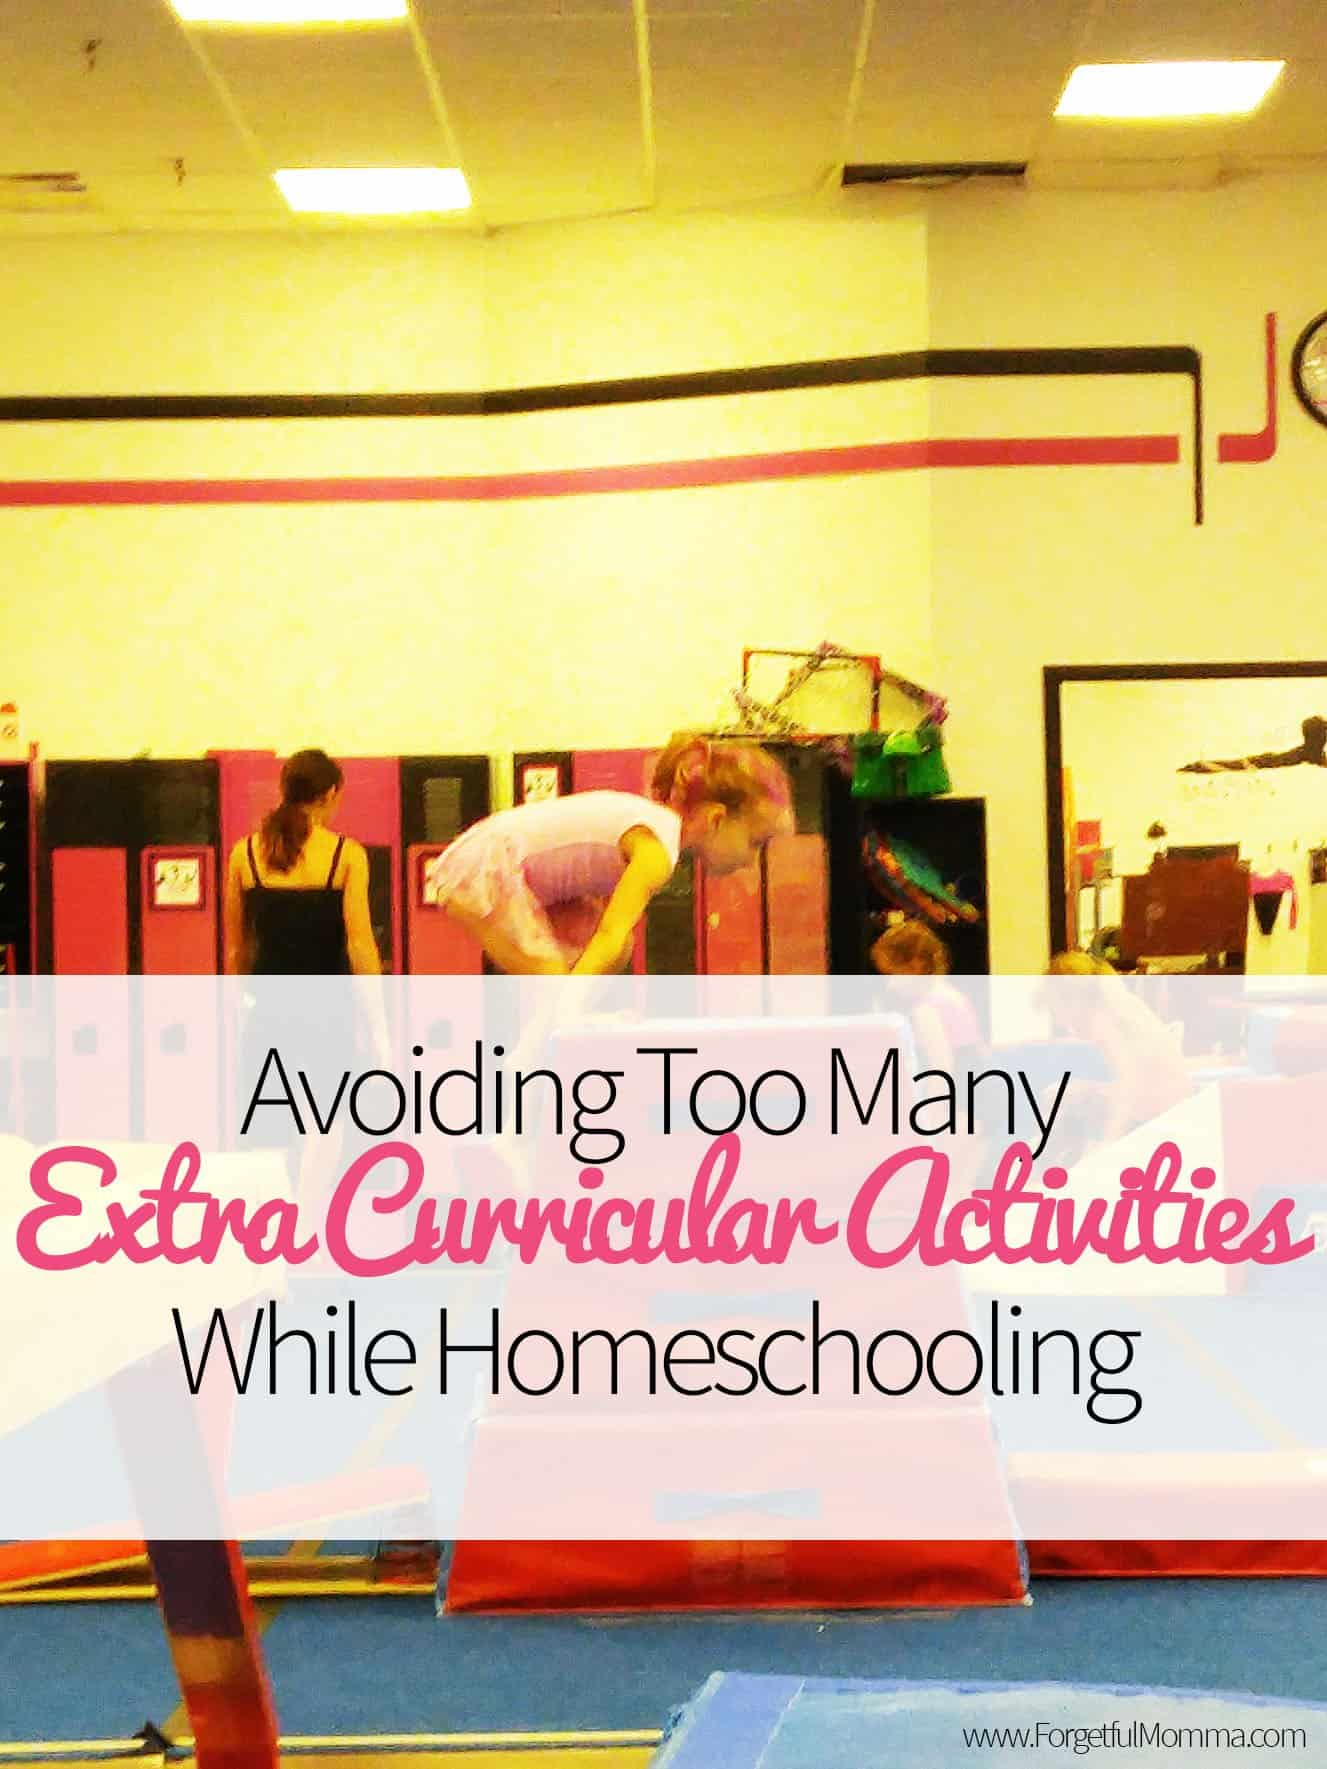 Avoiding Too Many Extra Curricular Activities While Homeschooling